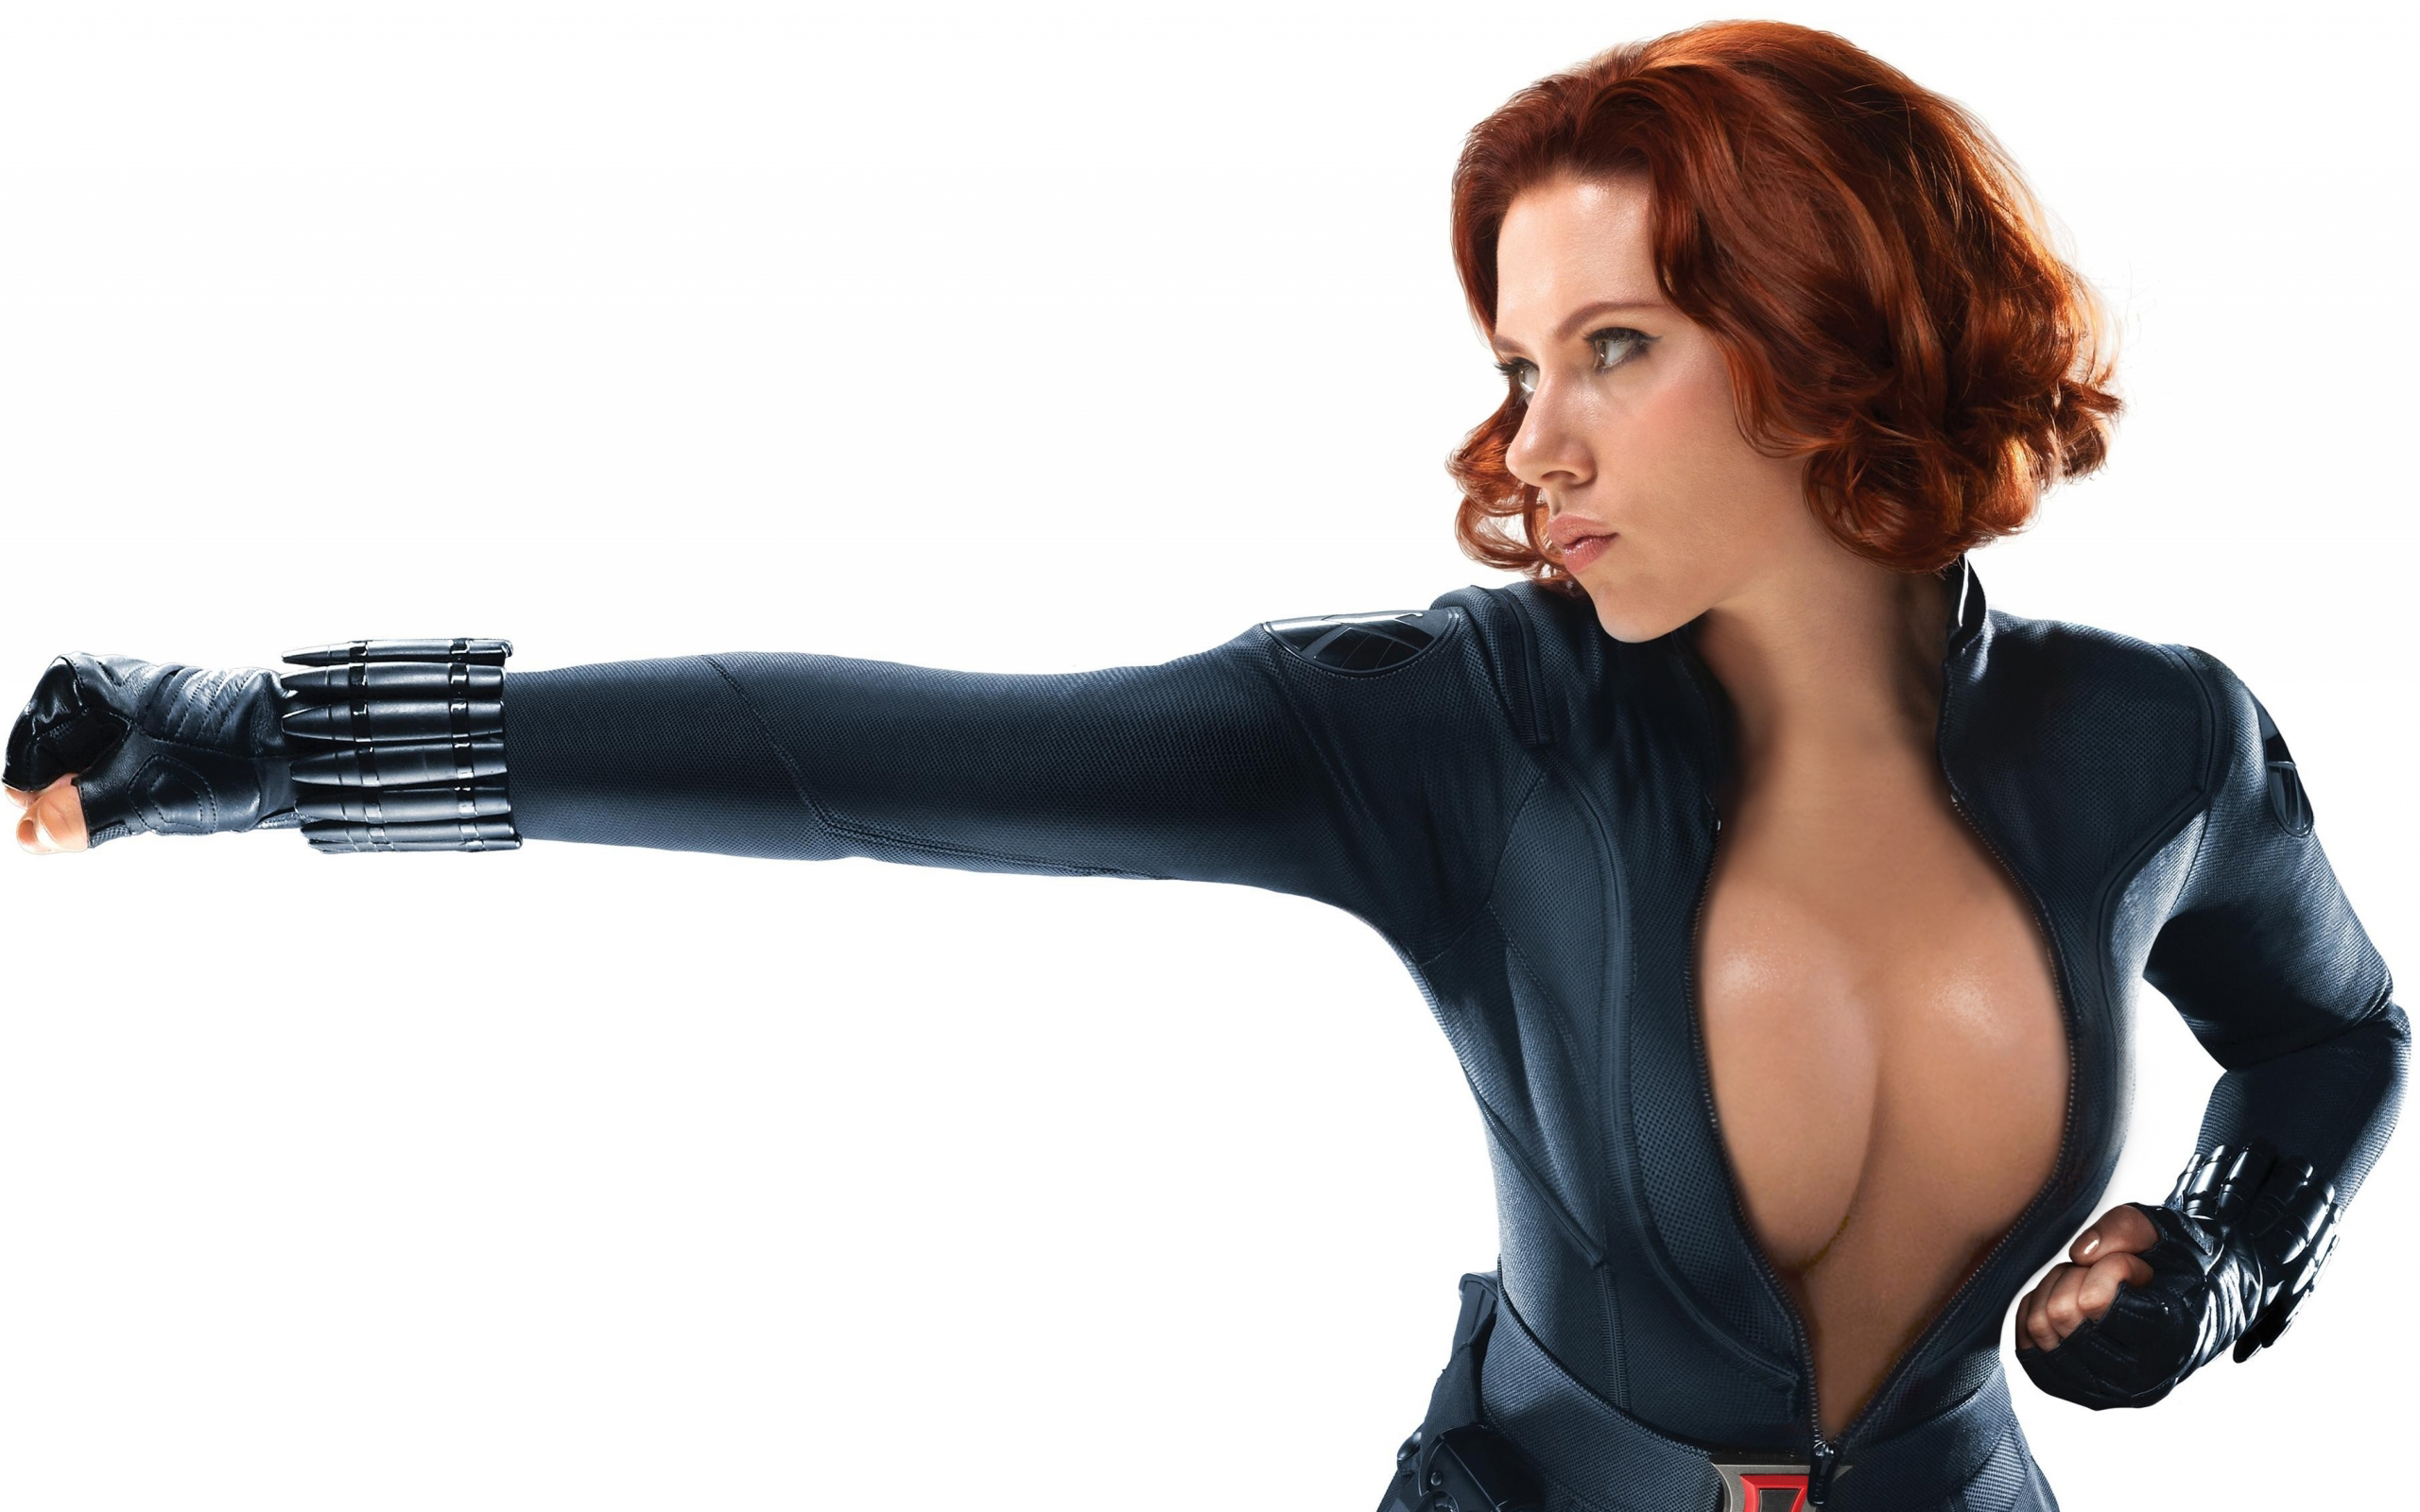 Black widow hot naked cosplay sex beauty pornstar